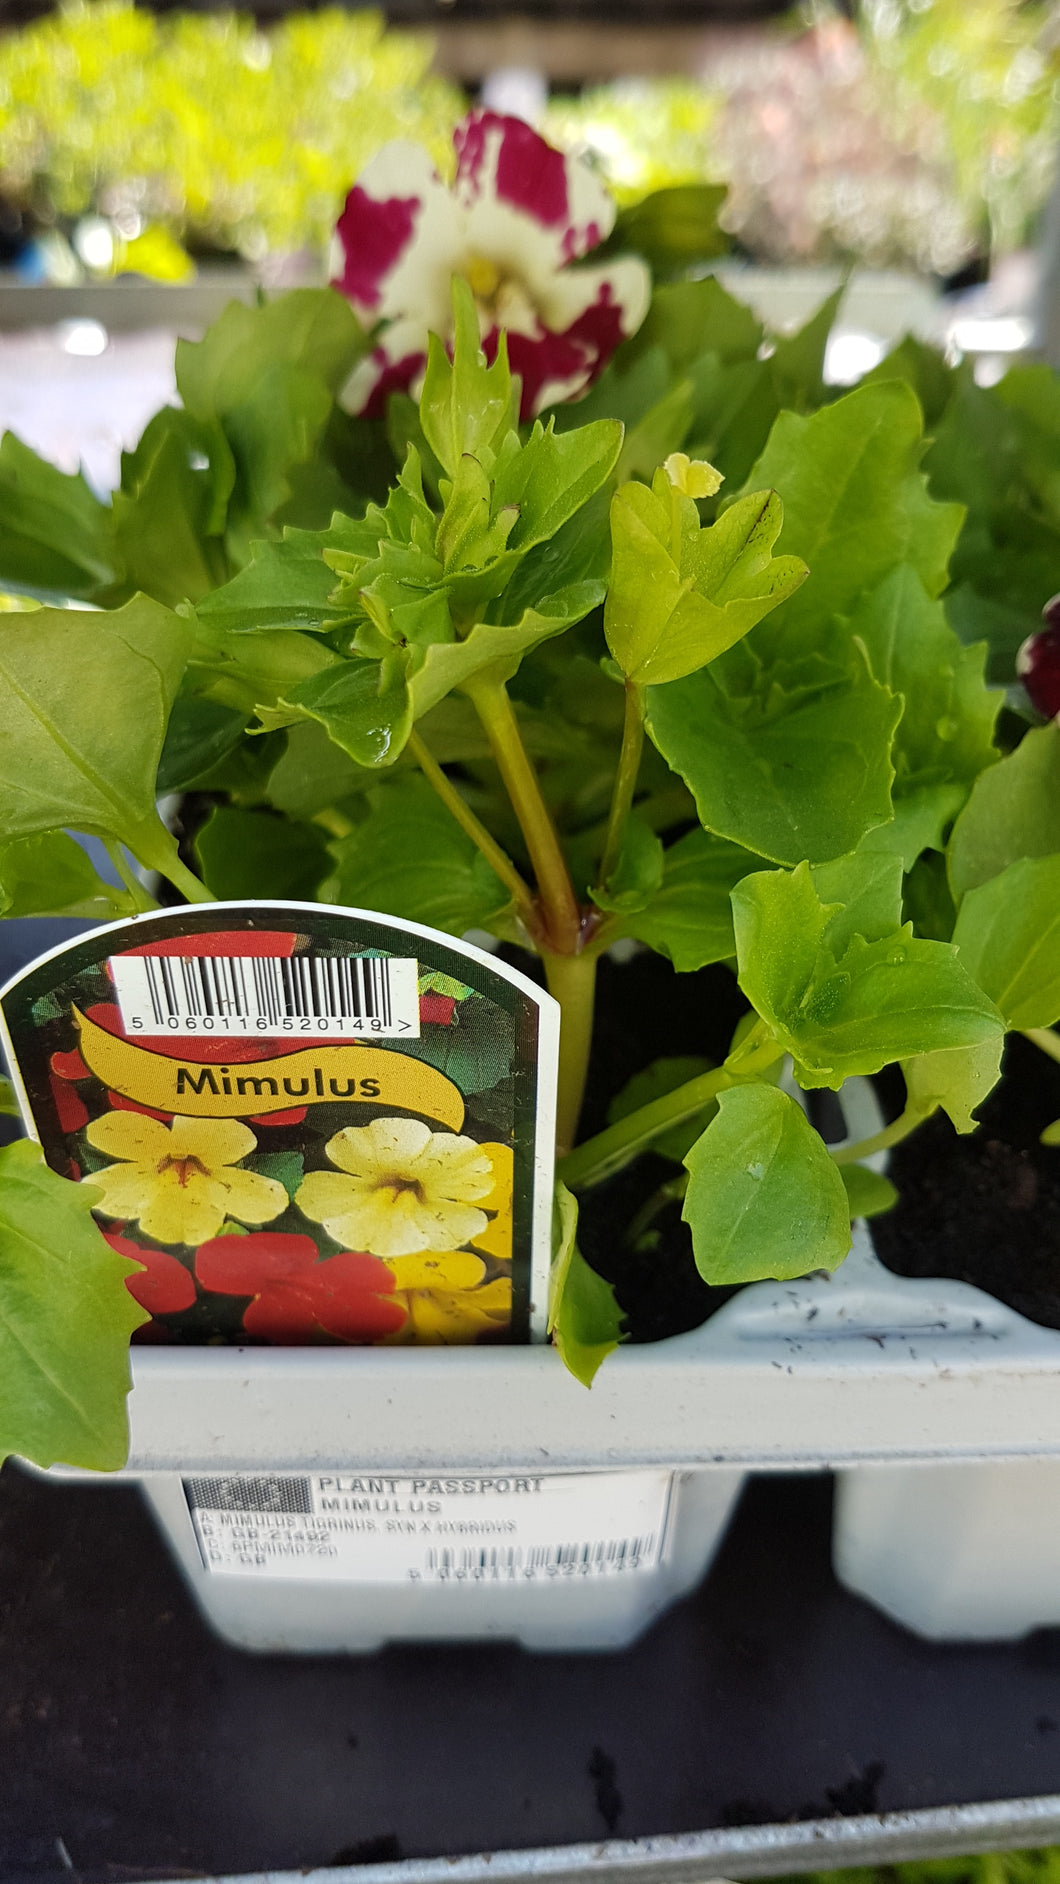 Mimulus Mixed